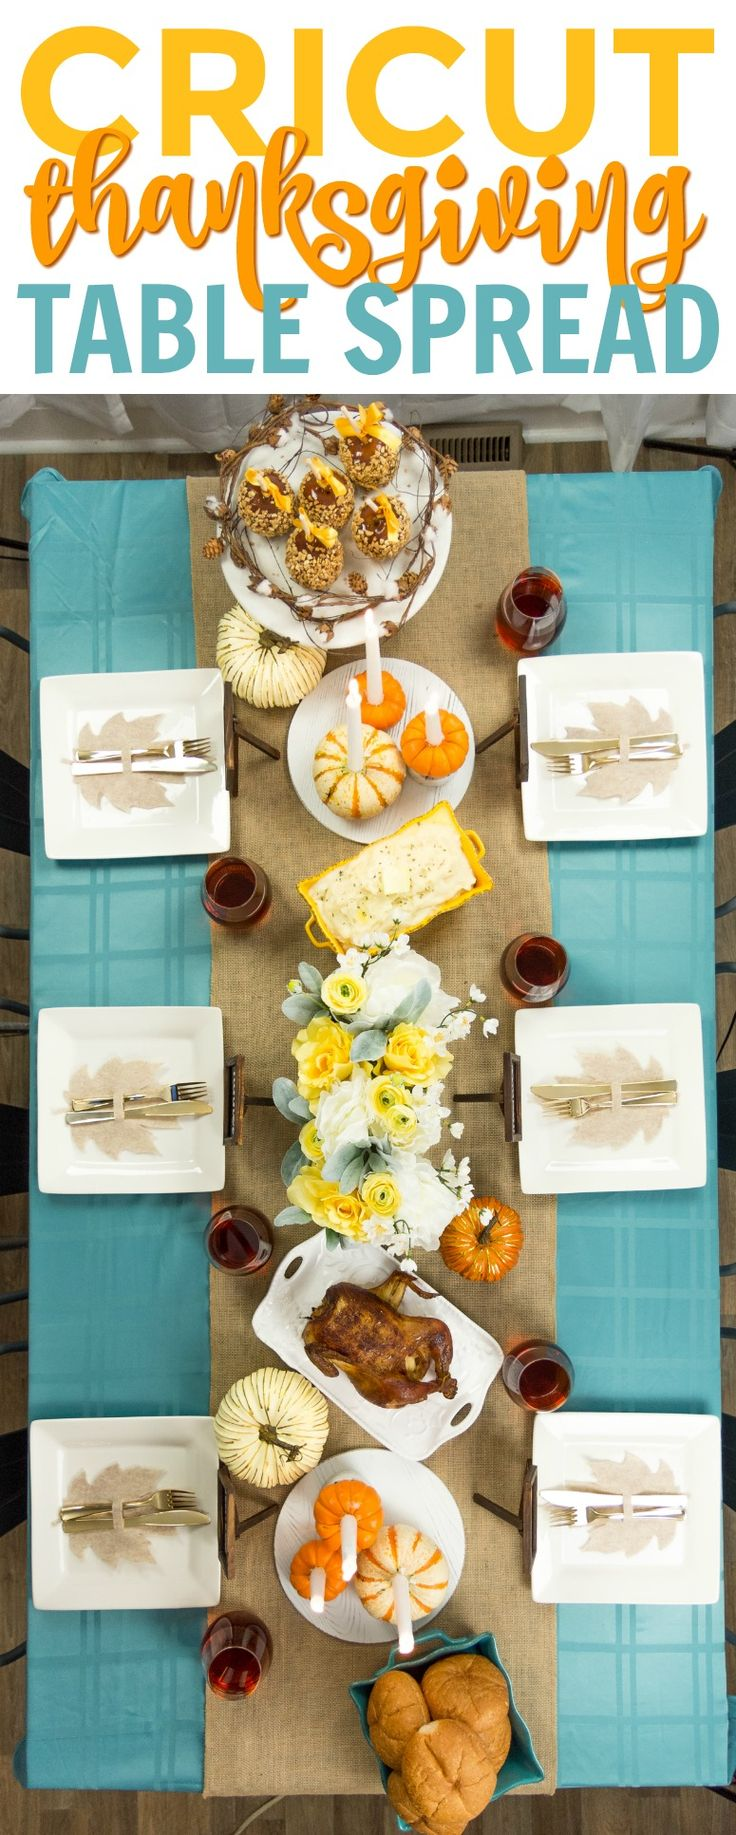 I am so excited to share this year's Thanksgiving Table Spread with you all. ...